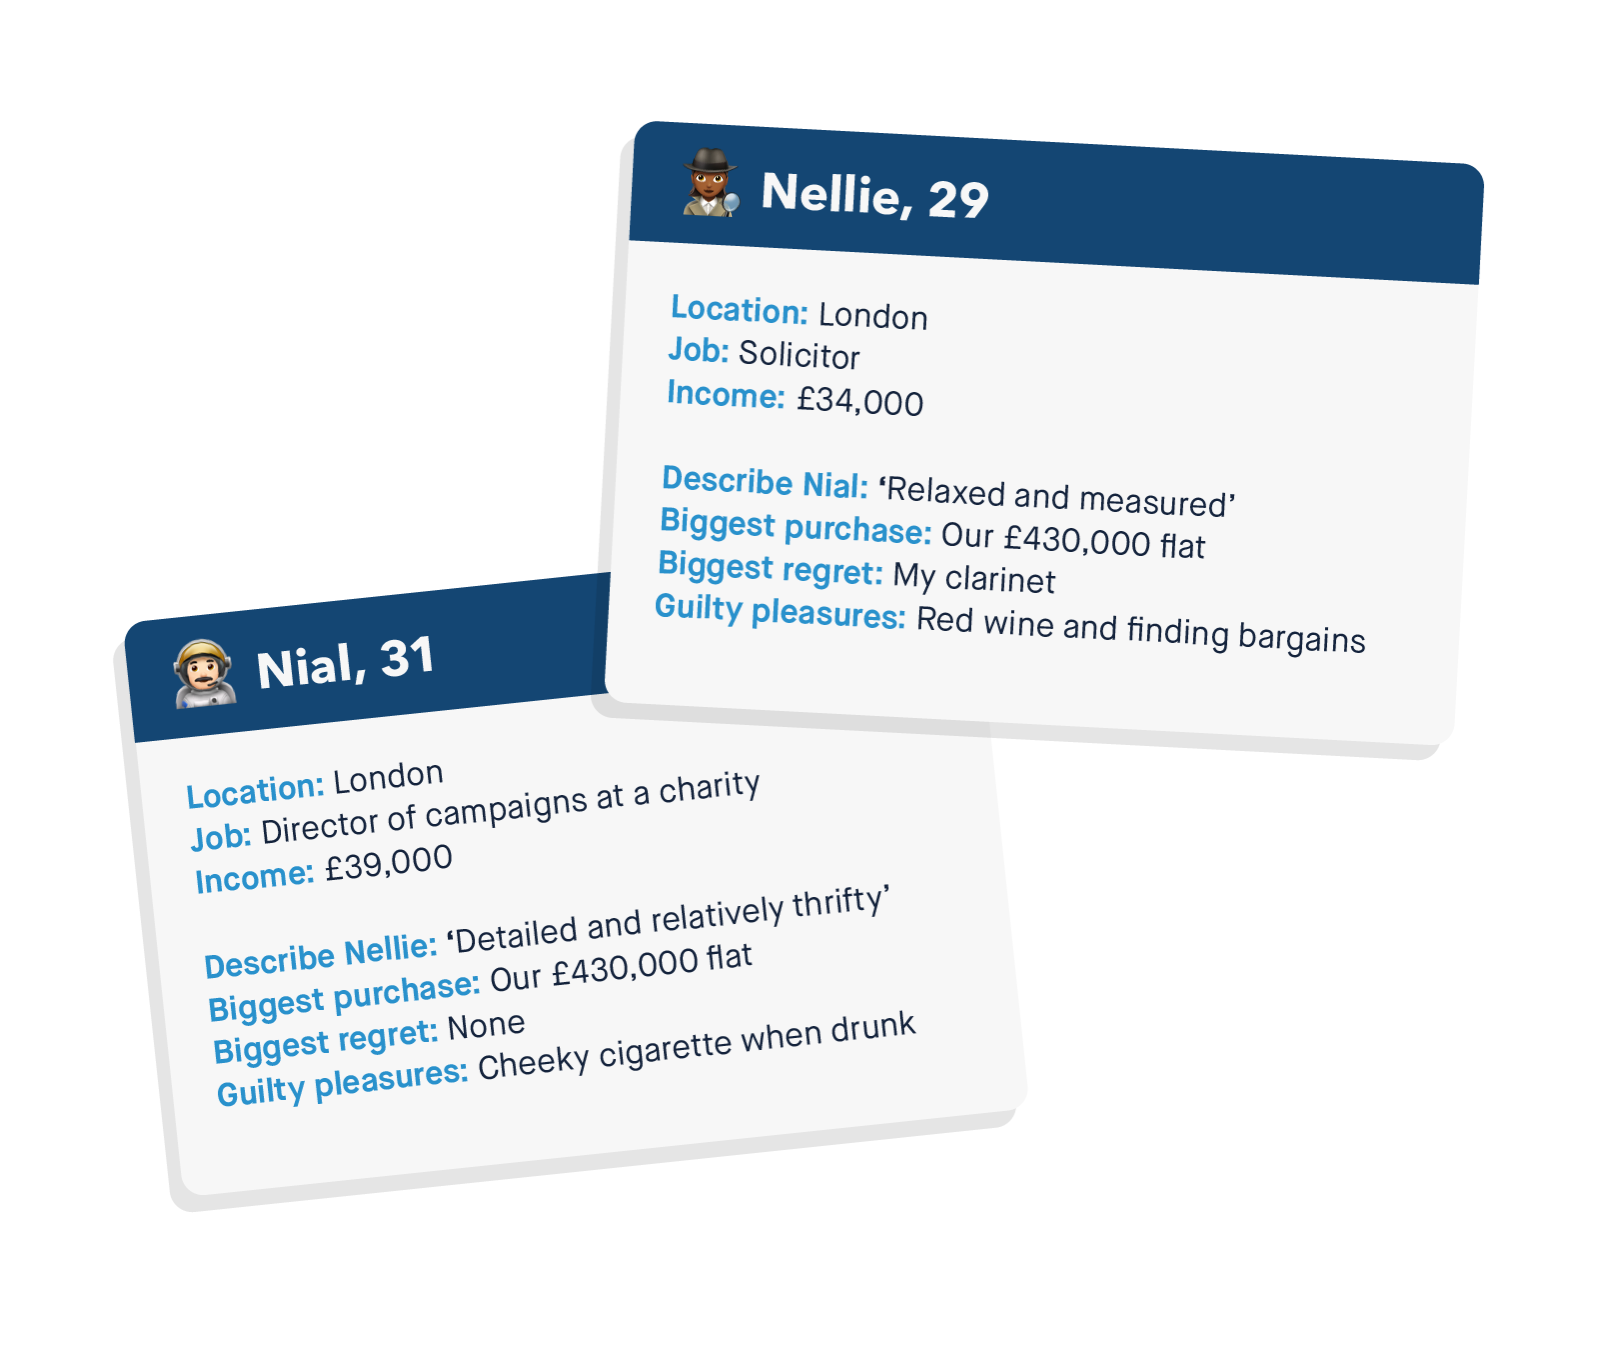 Name: Nellie Age: 29  Location: London Job: Solicitor  Salary: £34,000 Together for? 5 ½ years  Describe Nial: Relaxed and measured  Biggest purchase? Our £430,000 flat Biggest regret? My clarinet Guilty pleasures? Red wine and finding bargains     Name: Nial Age: 31  Location: London Job: Director of campaigns at a charity Salary: £39,000 Together for? 5 ½ years  Describe Nellie: Detailed and relatively thrifty  Biggest purchase? Our £430,000 flat Biggest regret? None Guilty pleasures? A cheeky cigarette when I'm drunk